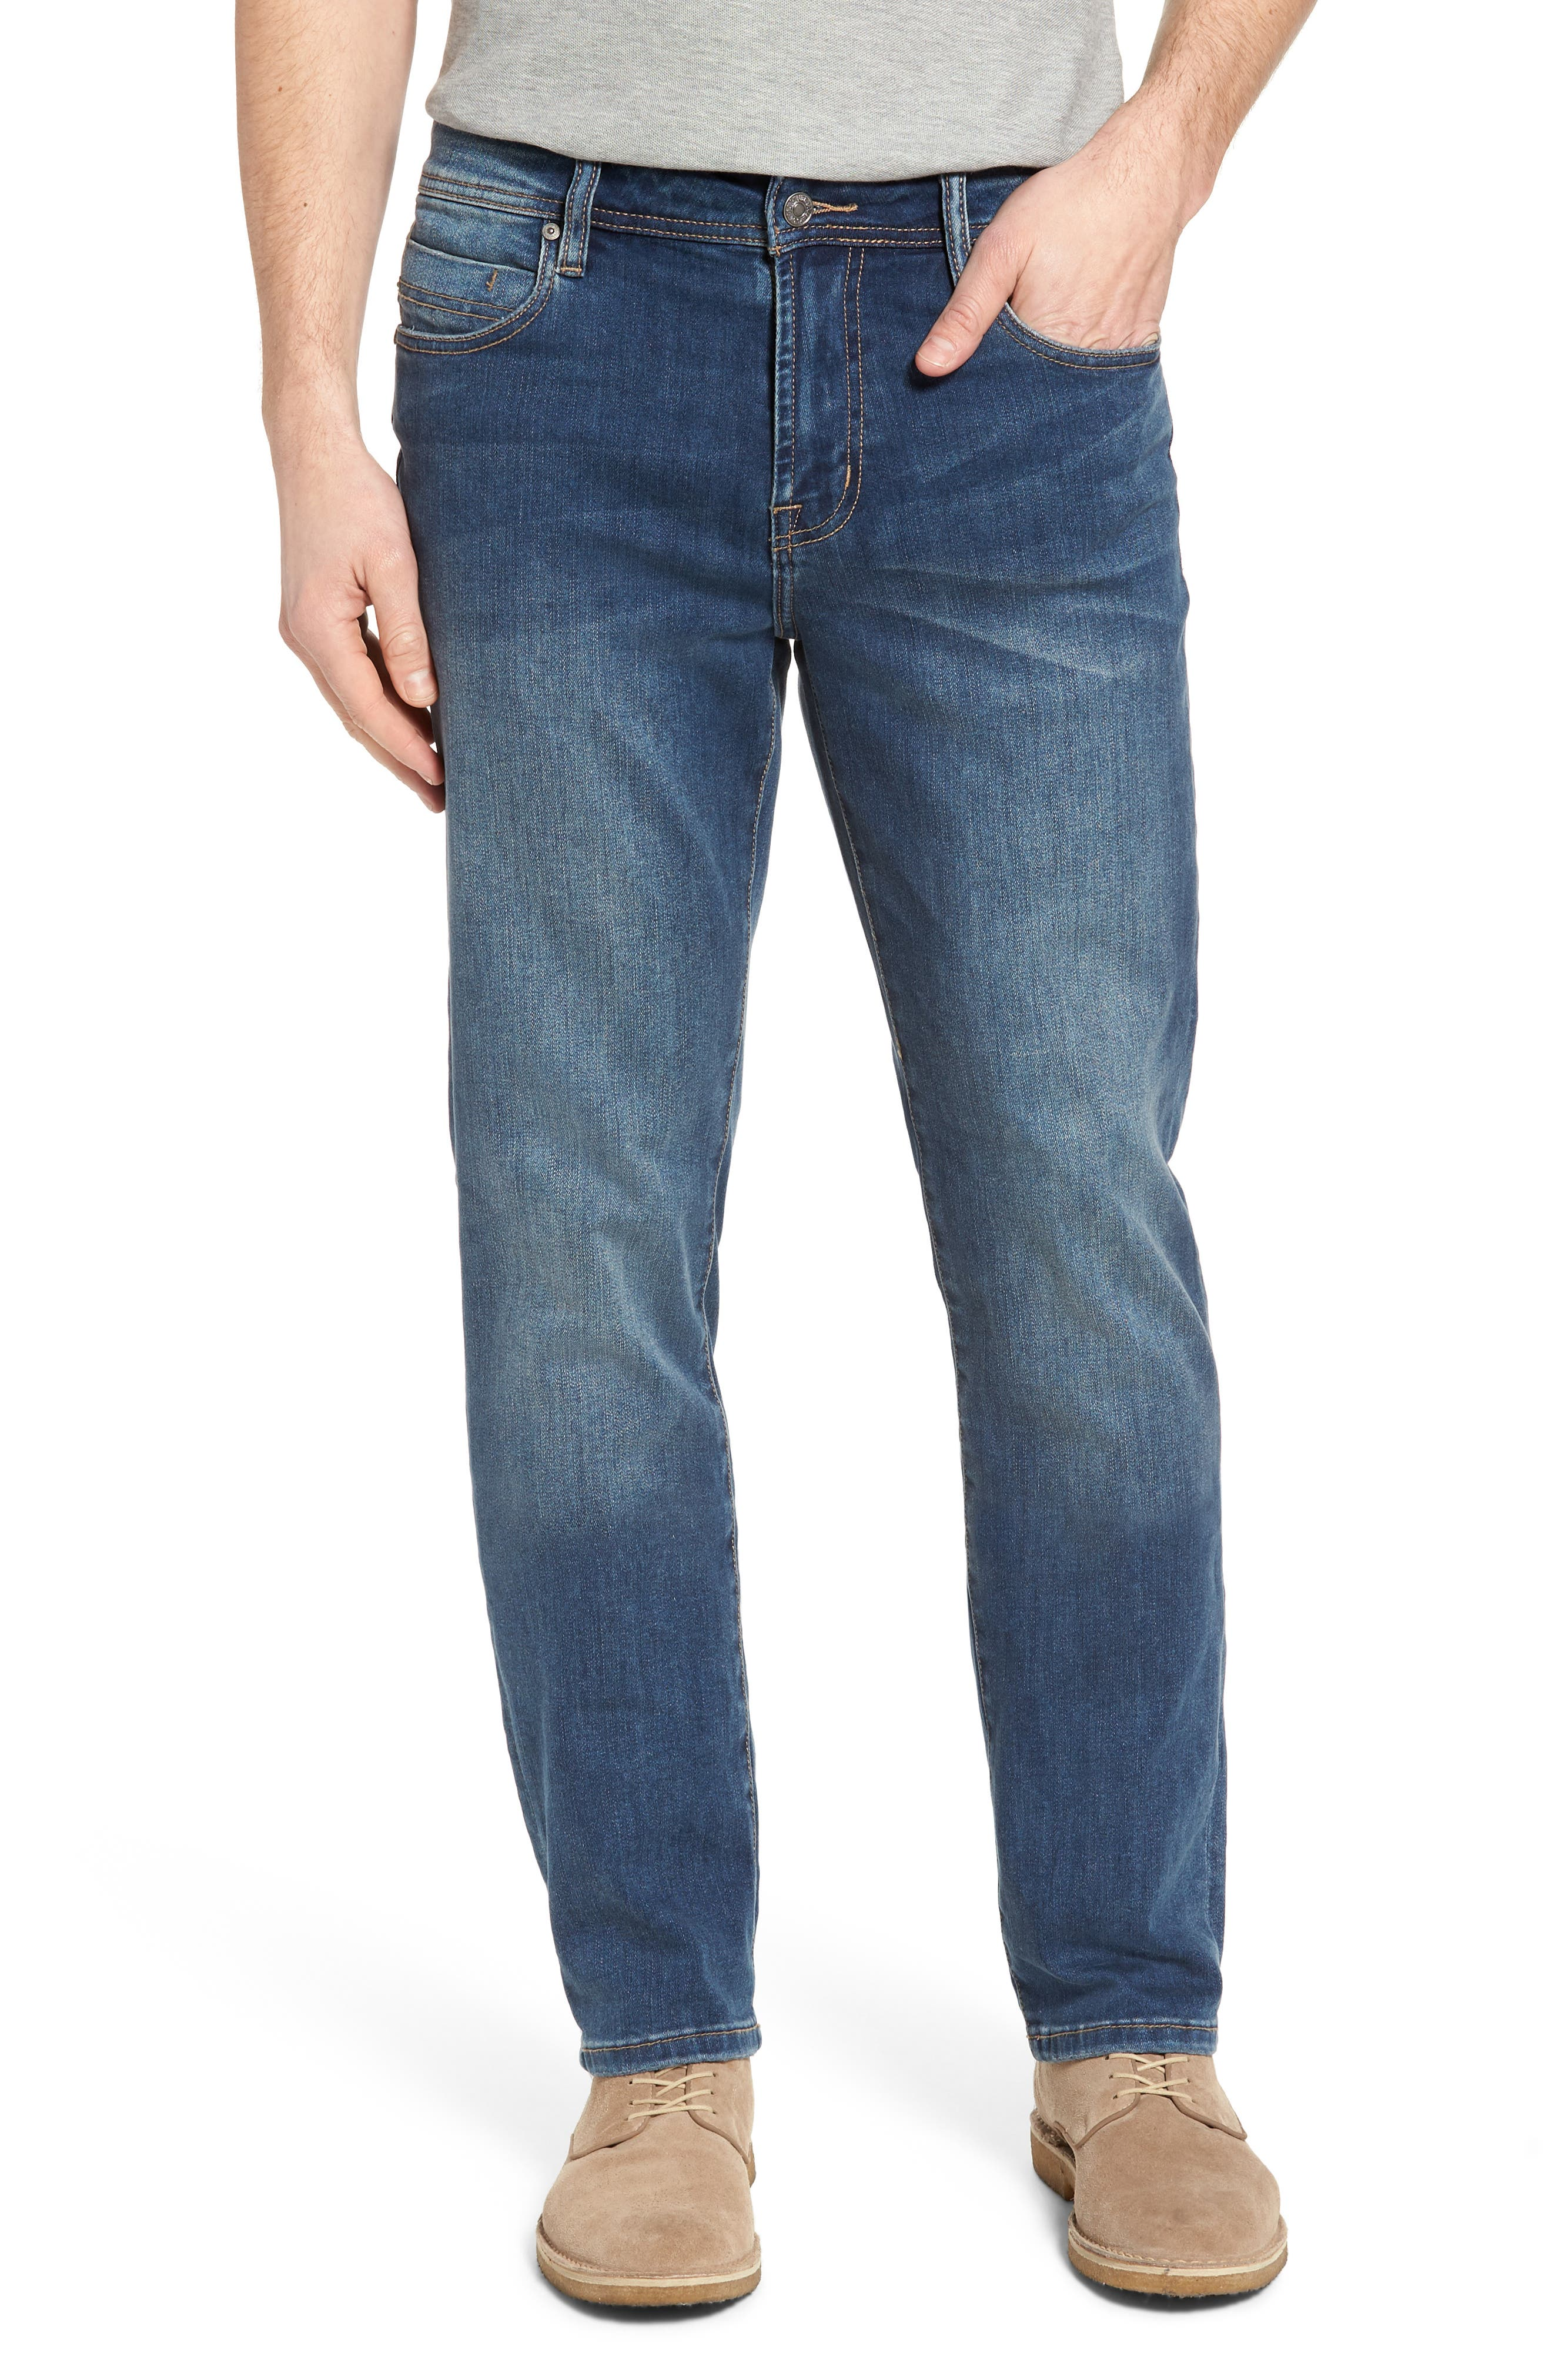 Jeans Co. Regent Relaxed Fit Jeans,                             Main thumbnail 1, color,                             Chatsworth